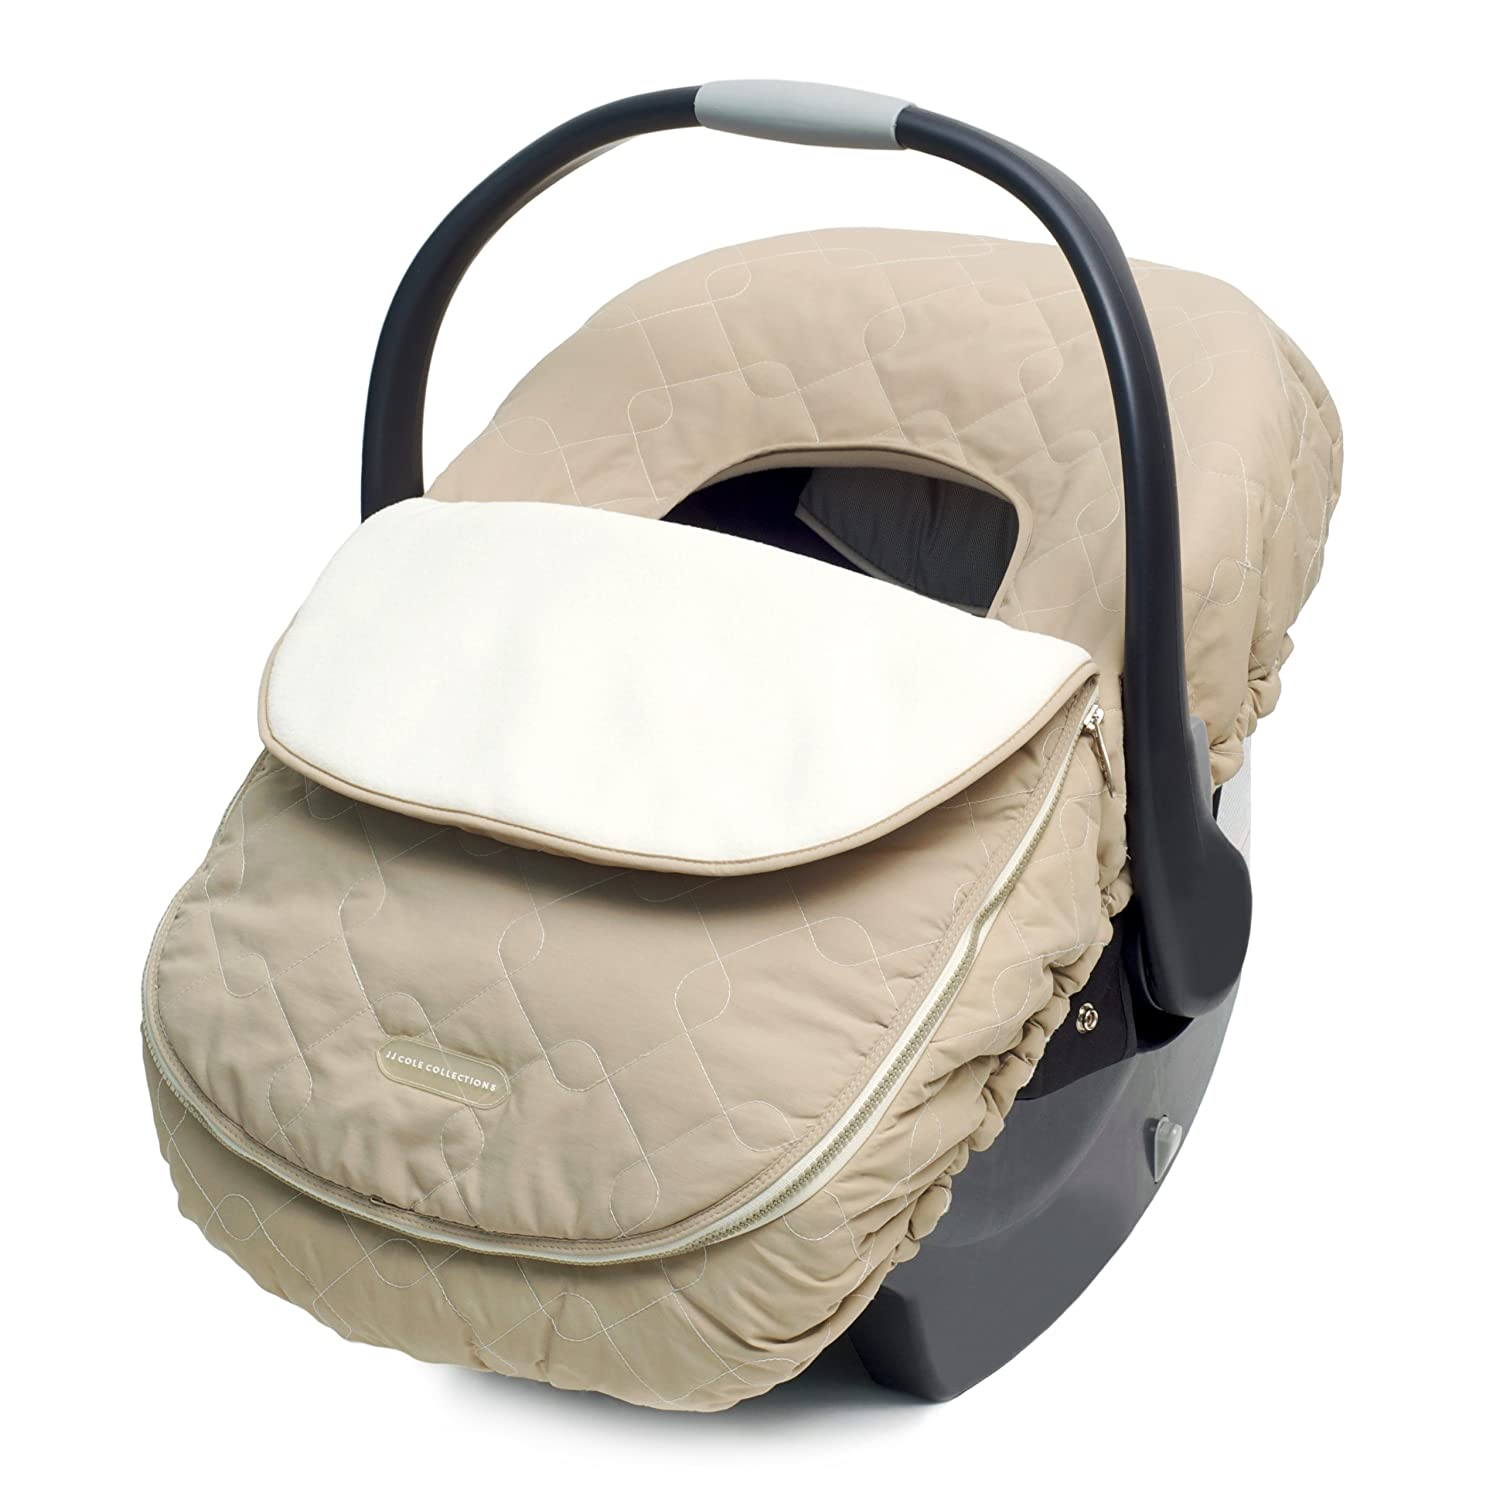 Amazon.com: JJ Cole Car Seat Cover, Khaki: Baby